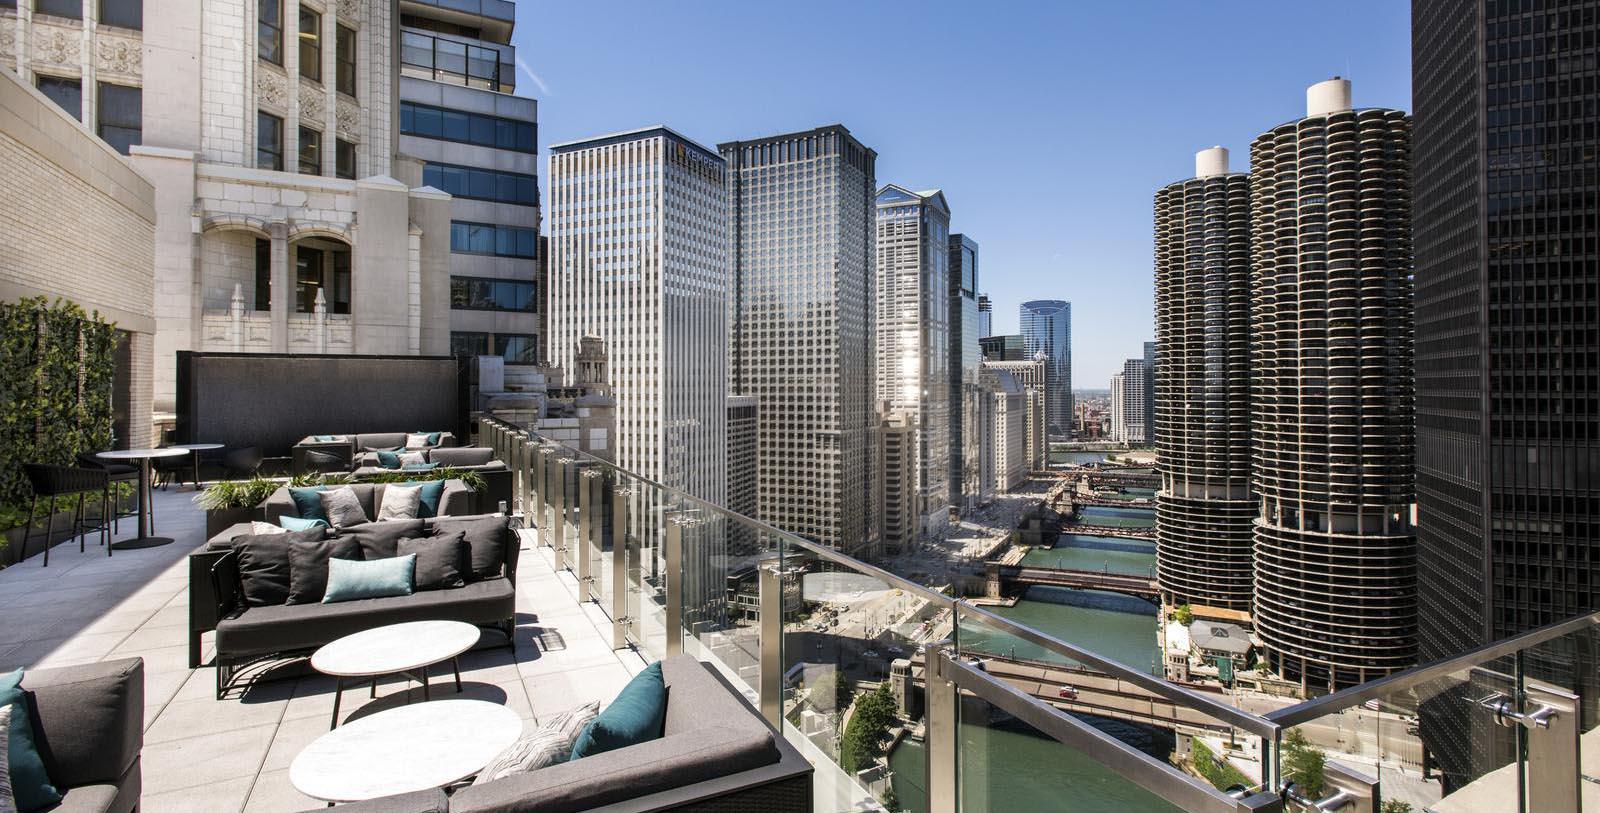 Daytime exterior view of LondonHouse Chicago and the Chicago River.